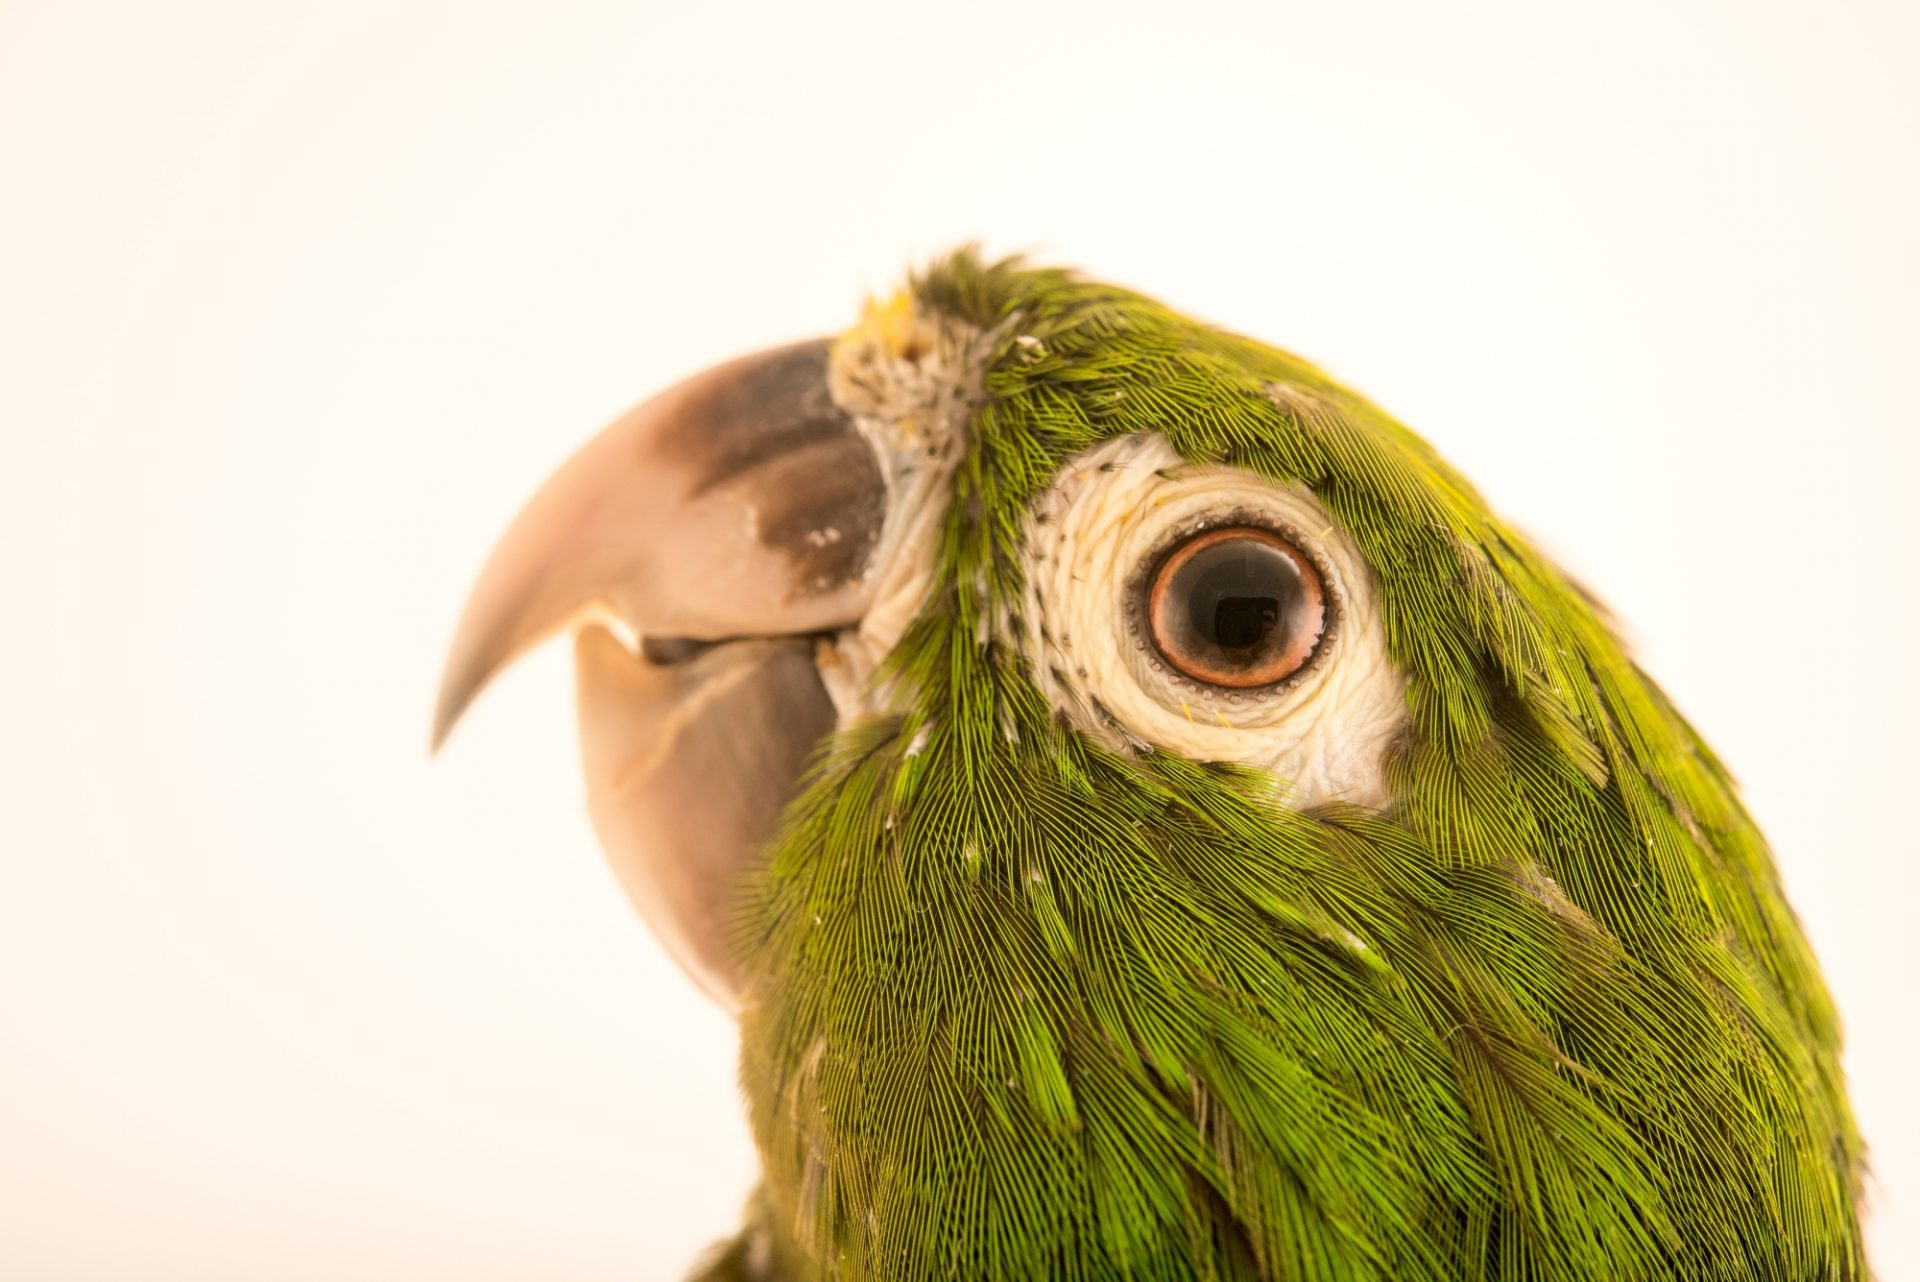 Photo: Aztec parakeet, Eupsittula astec astec, at Loro Parque Fundacion.